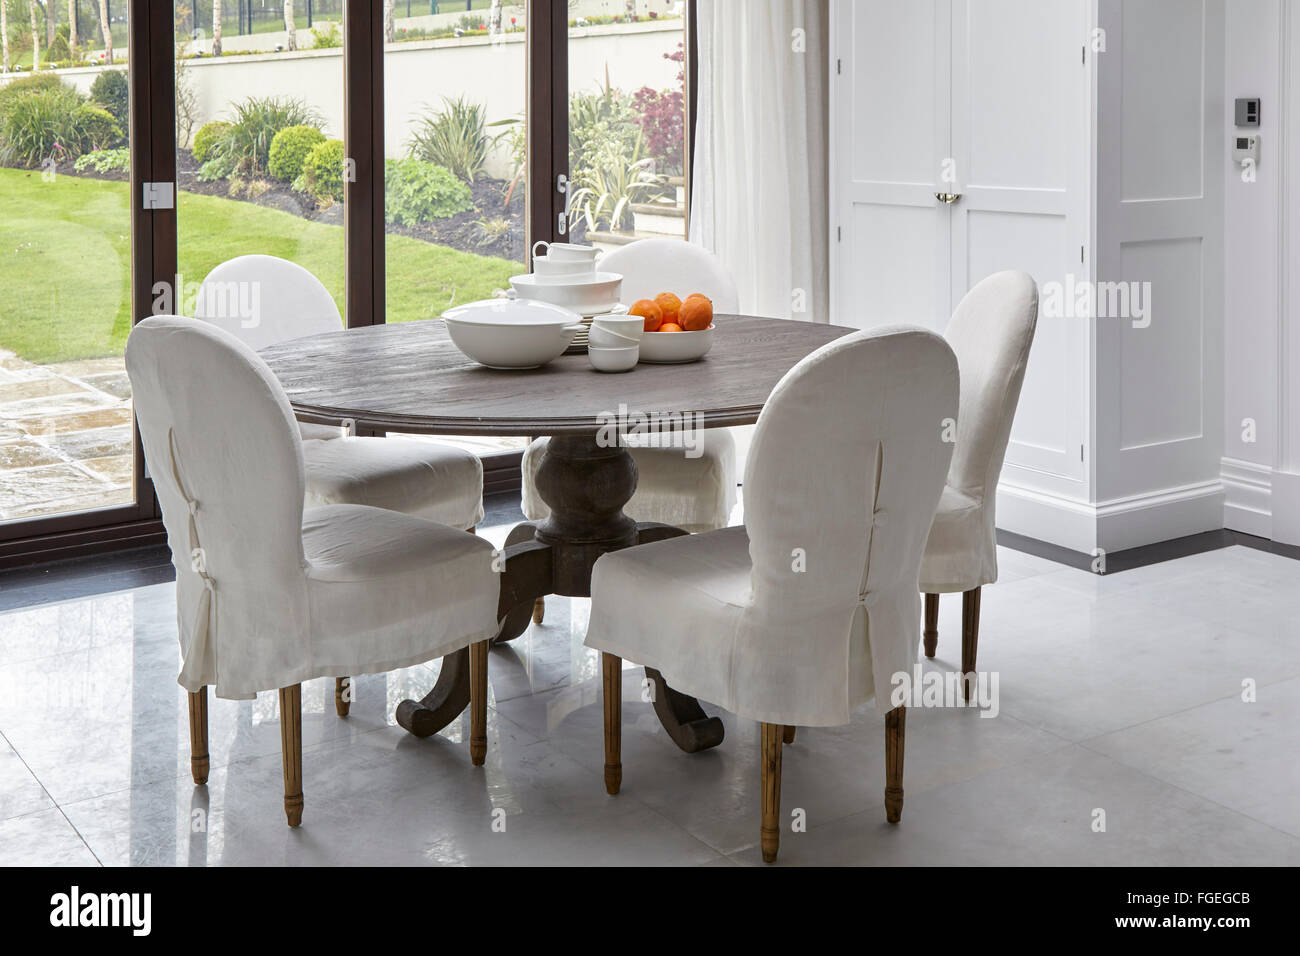 Kitchen Dining Table By Window. Tudor Hall, Potters Bar, United Kingdom.  Architect: Oro Bianco Interior Design Ltd, 2015.